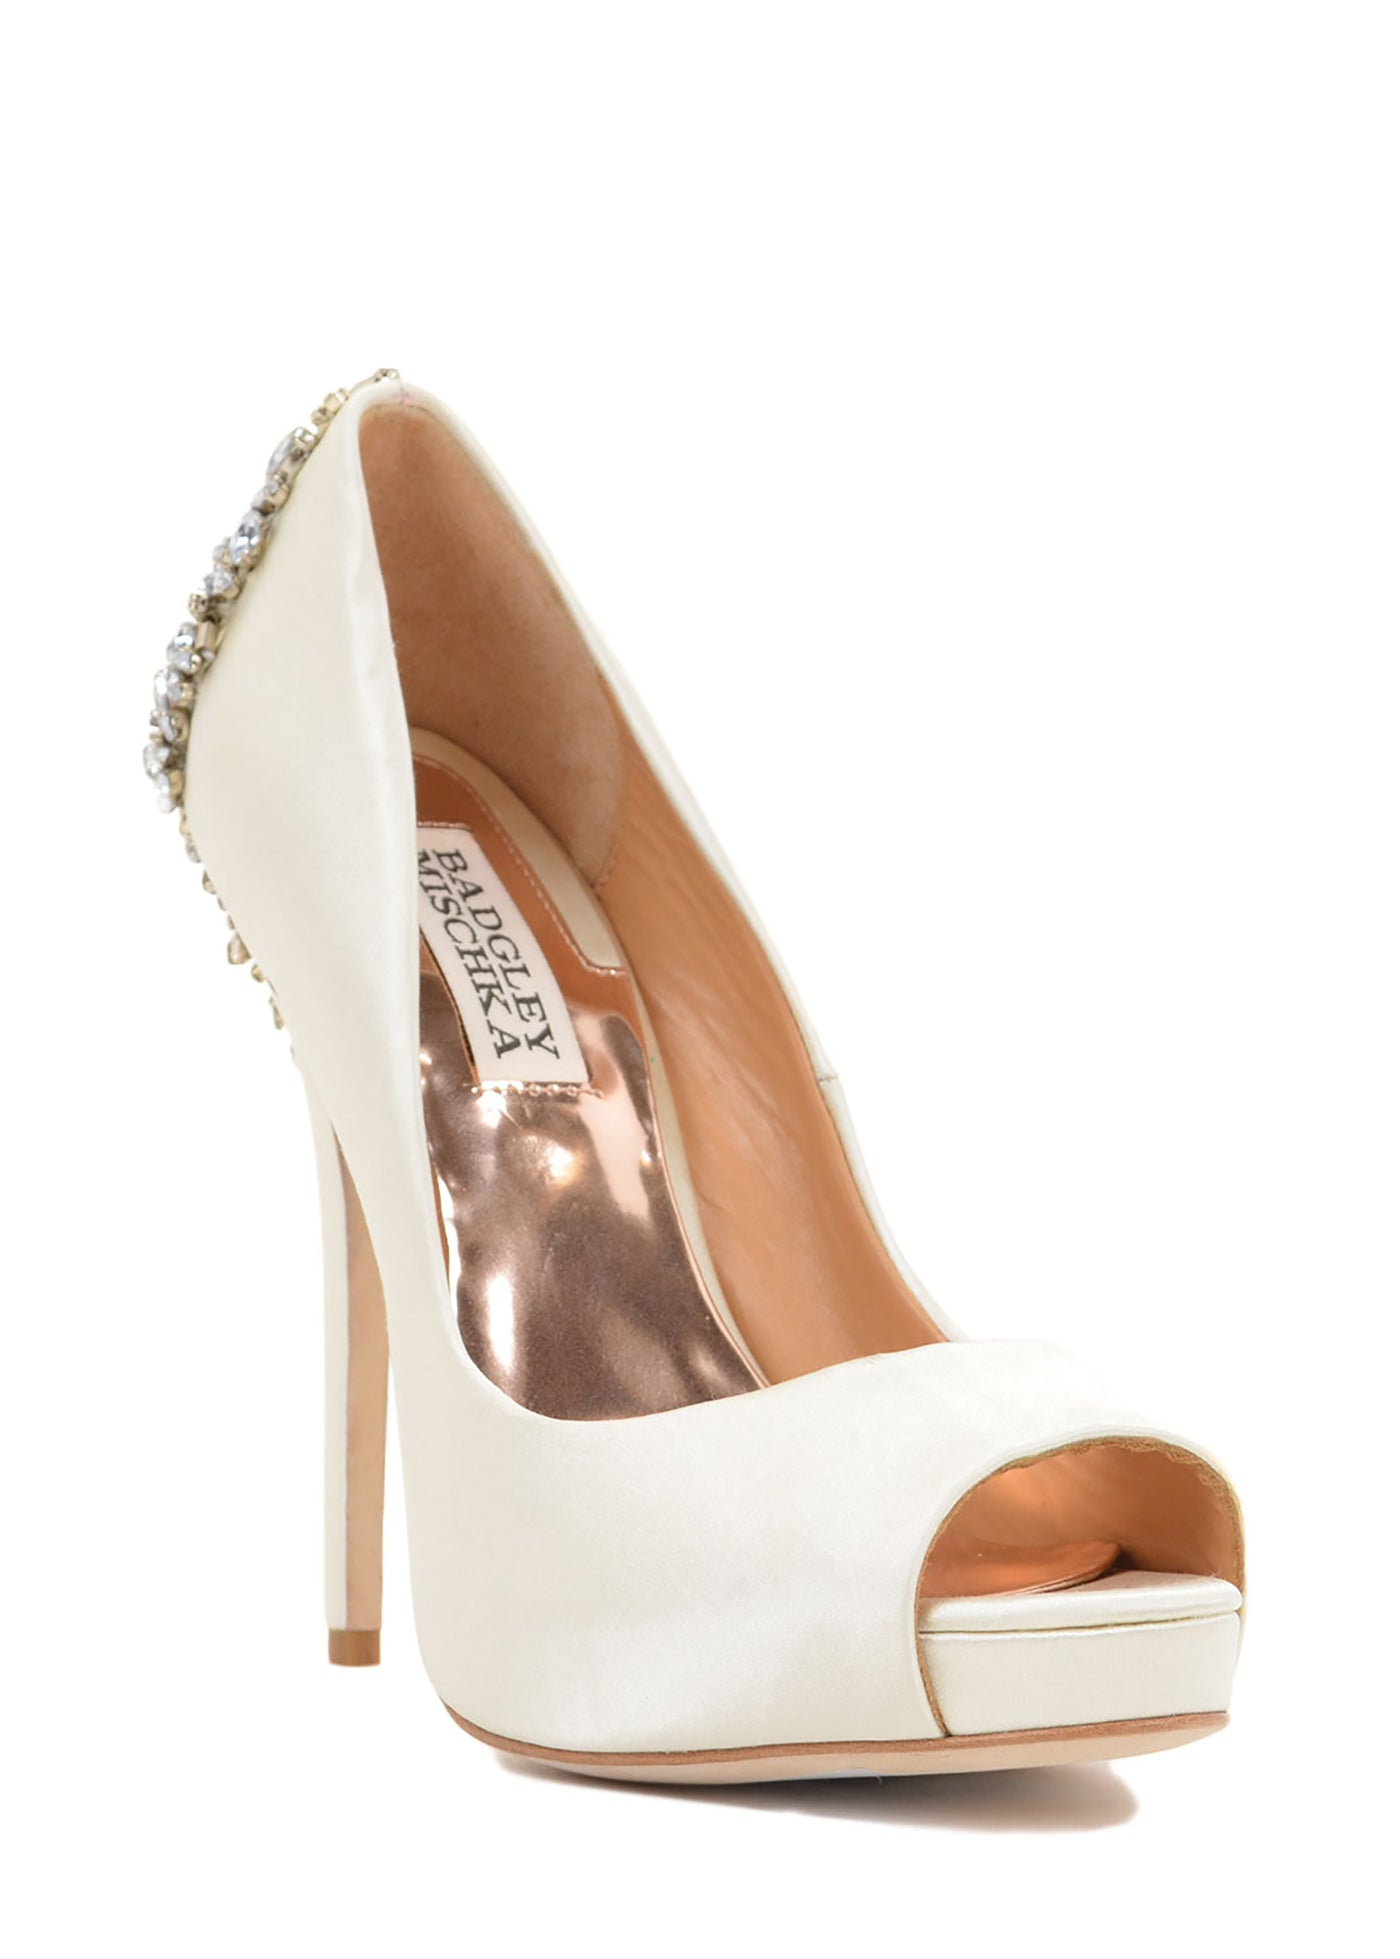 Kiara - Shoes - Badgley Mischka - Eternal Bridal